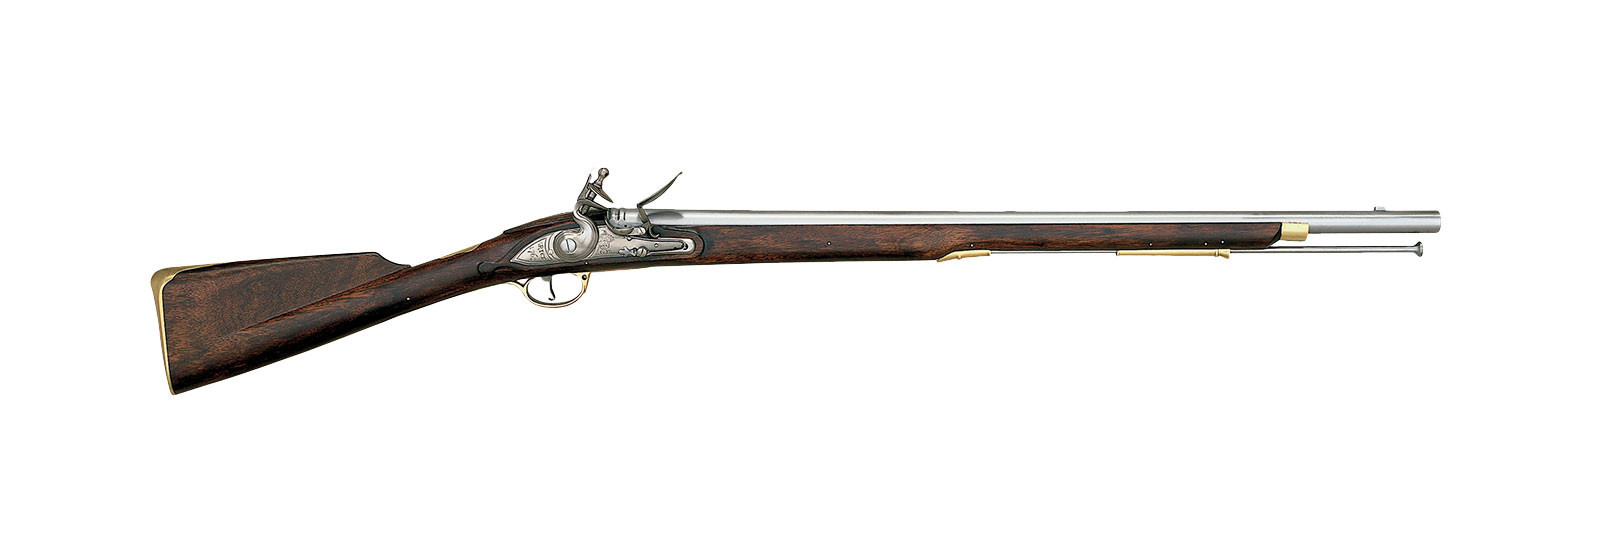 Carabina Brown Bess